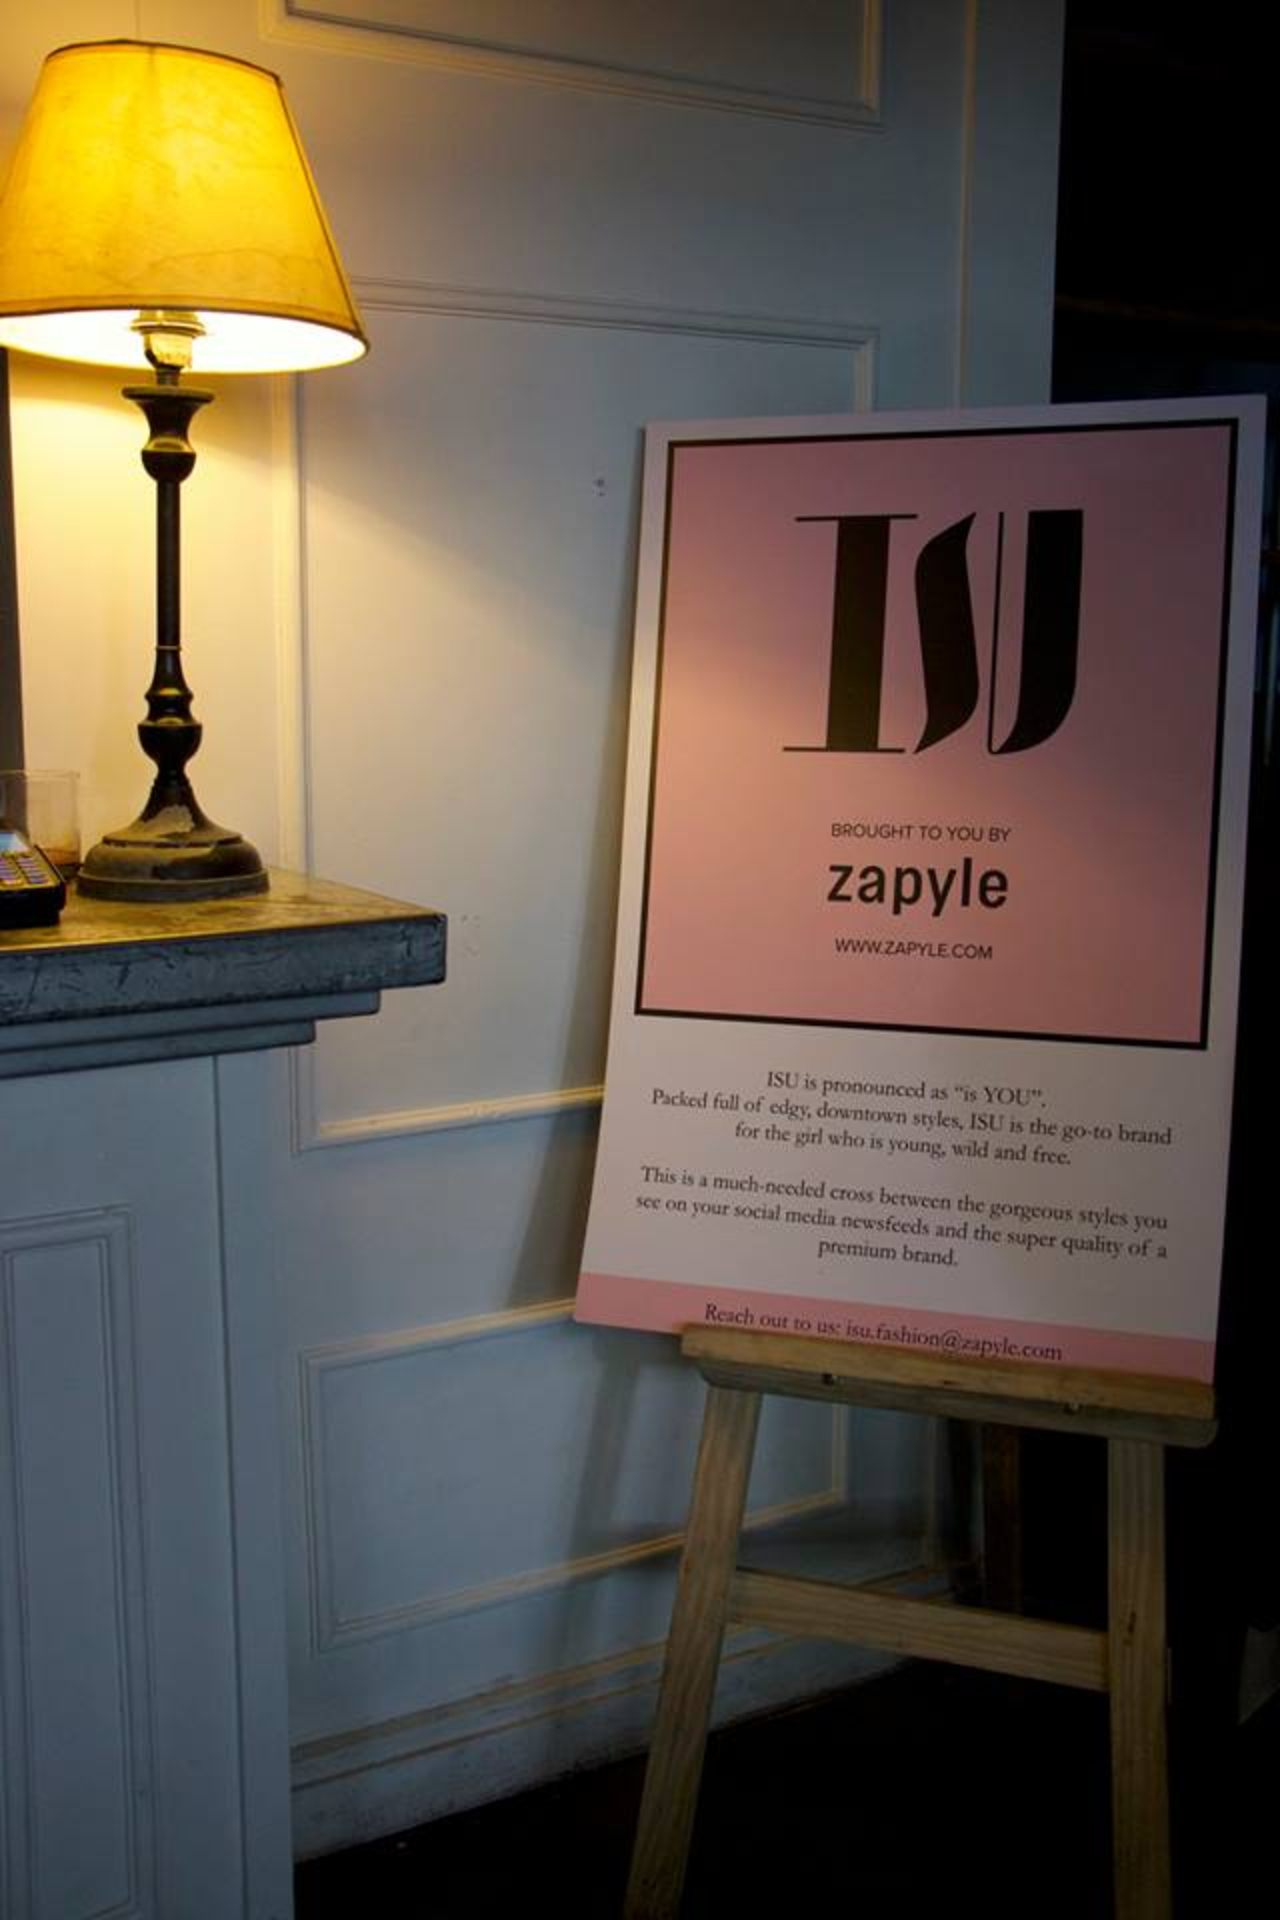 ZAPYLE Clothing Brand 'ISU' Launch + Top Picks from ISU Collection image